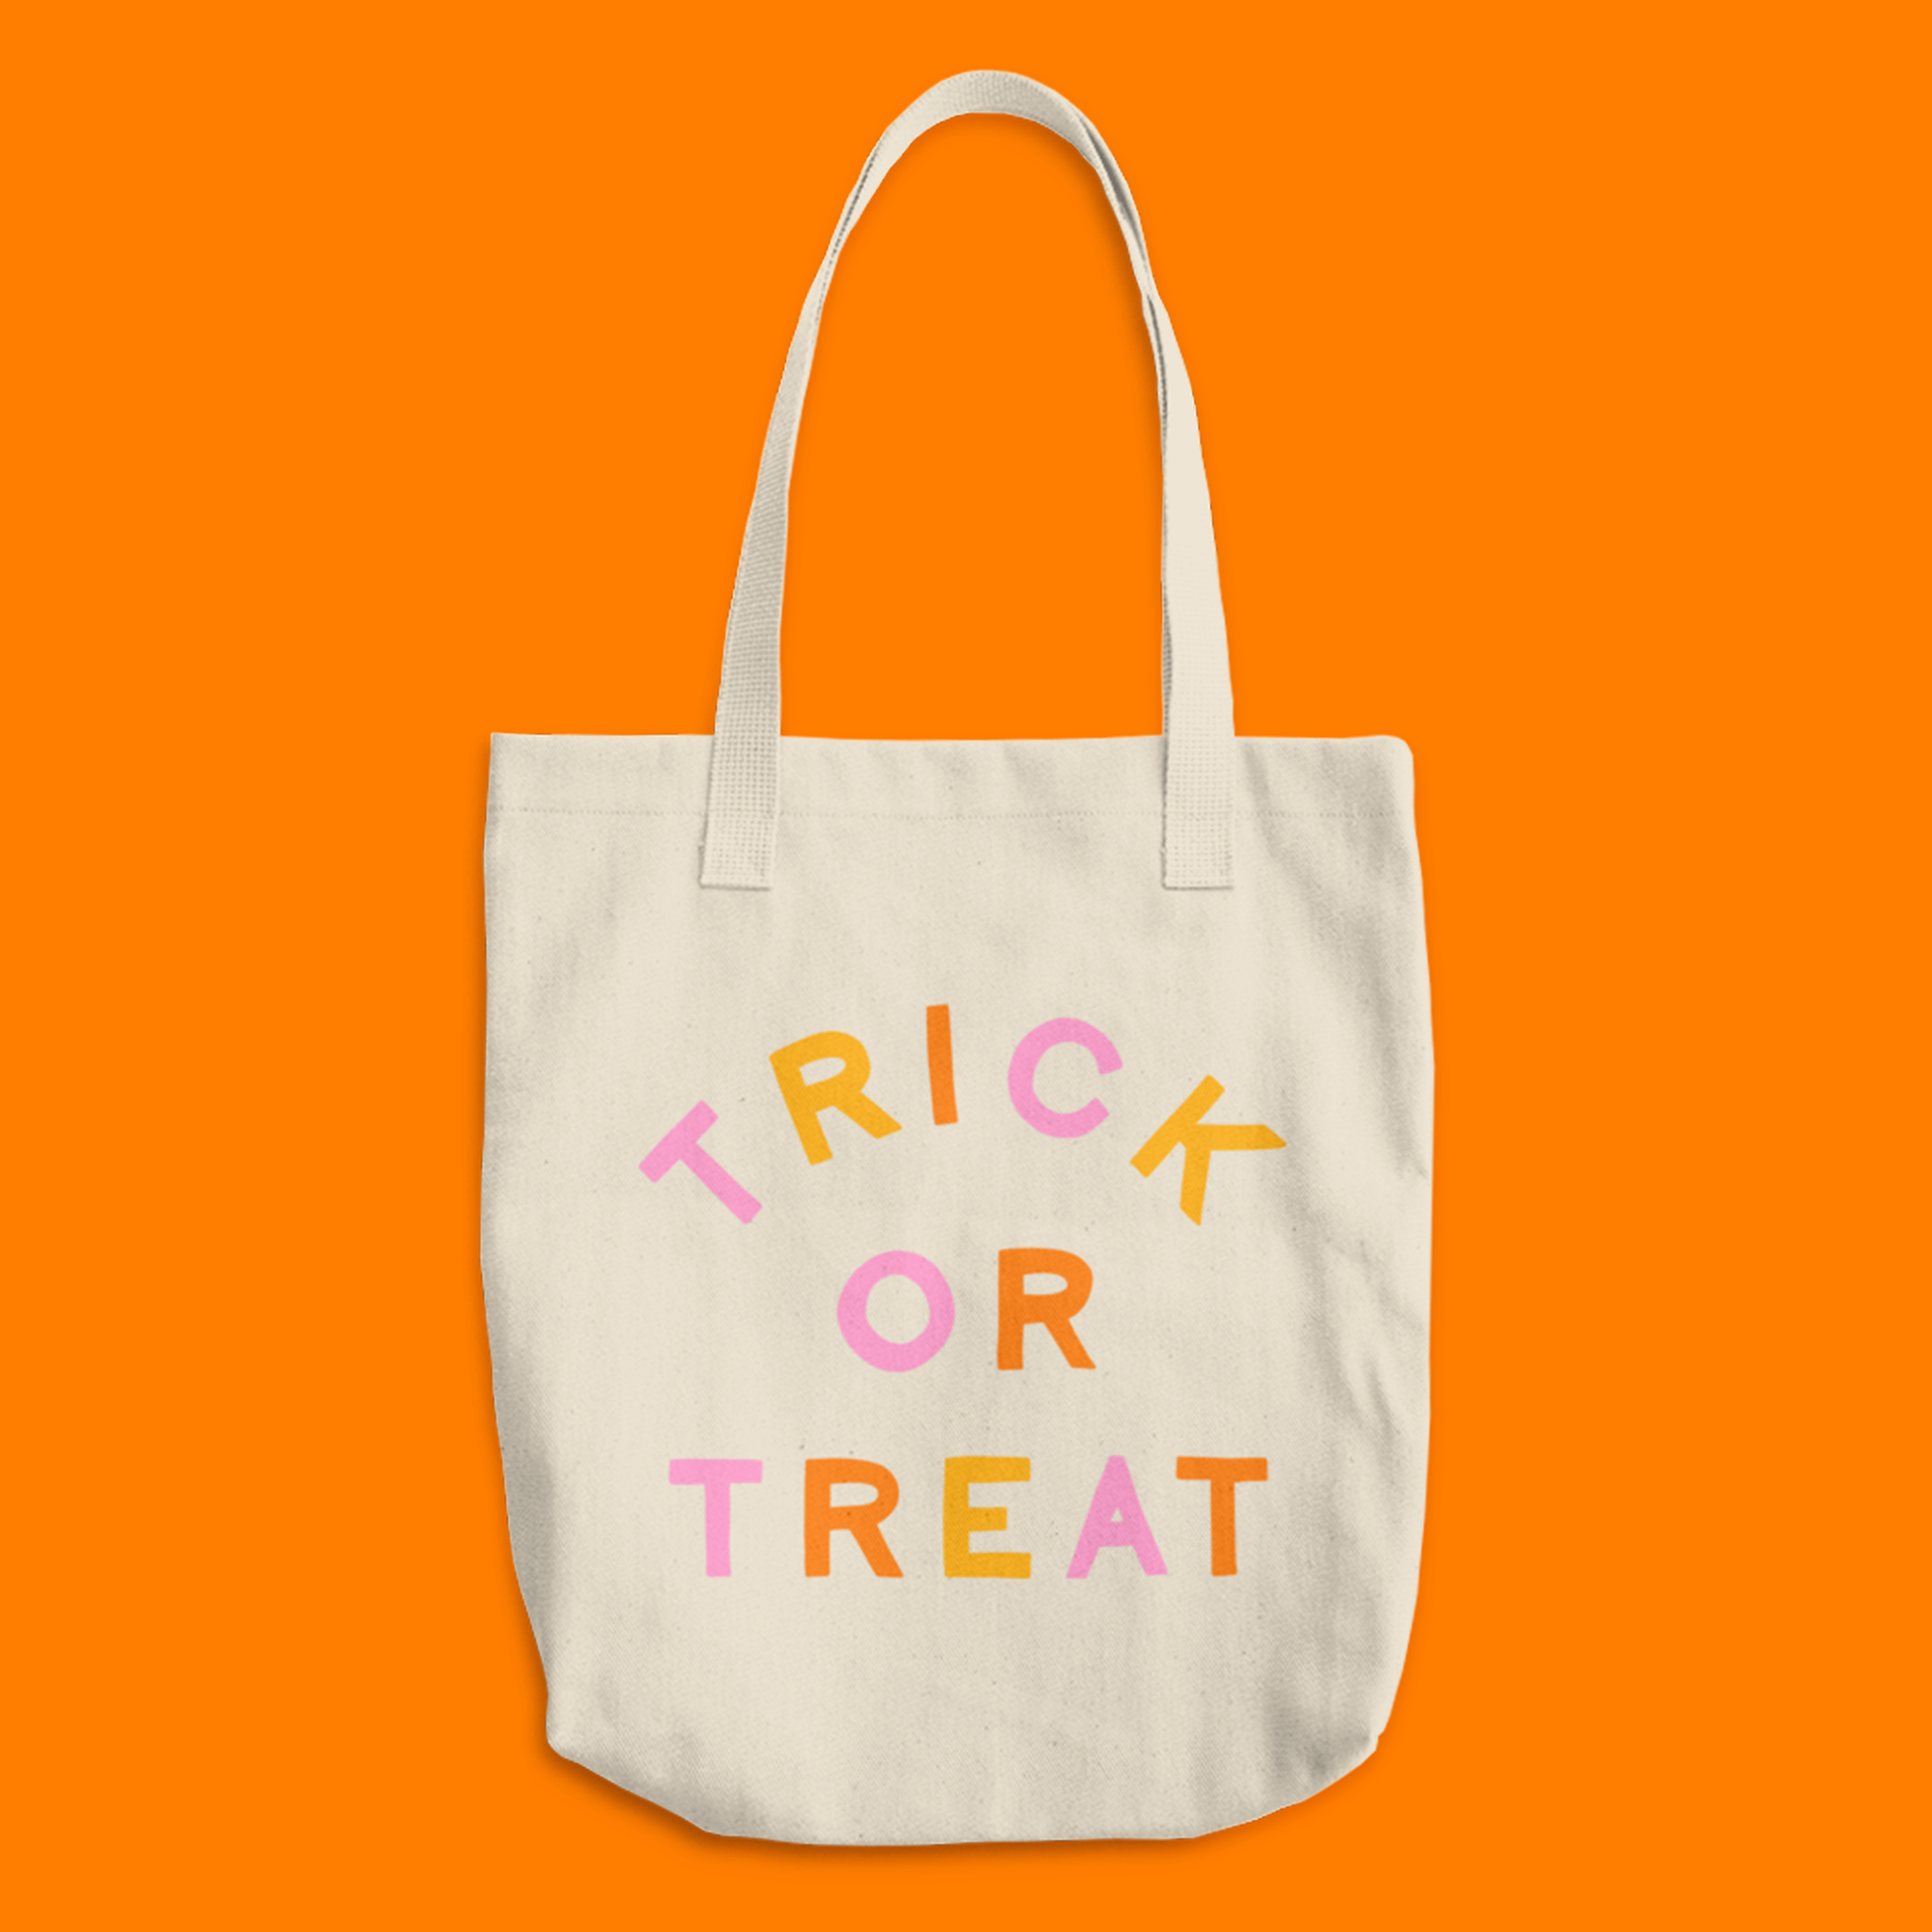 TRICK OR TREAT TOTE  $25.00